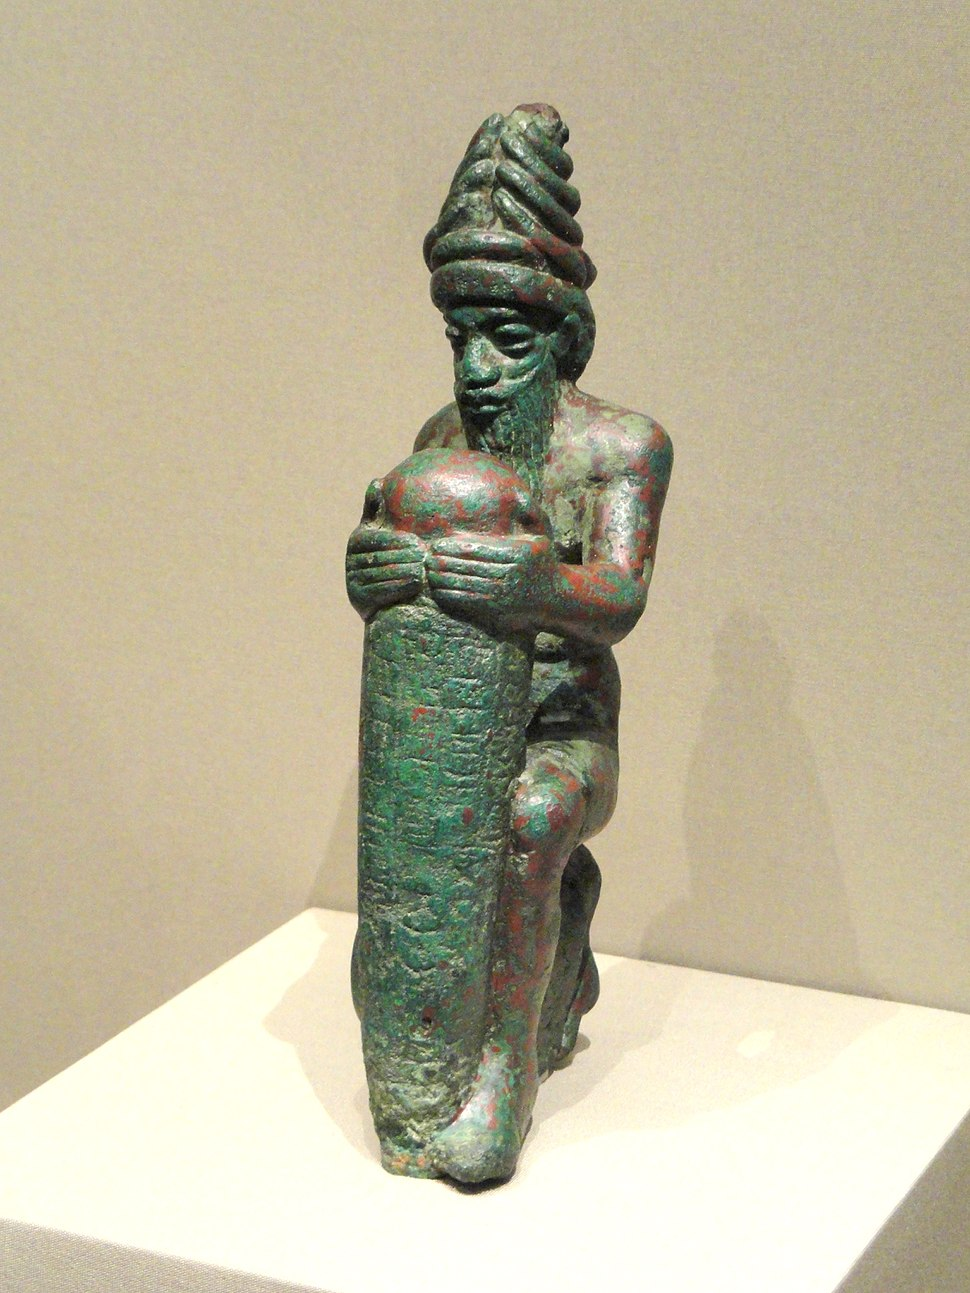 Foundation Nail of Gudea, about 2100 BC, Neo-Sumerian, Iraq, probably Lagash, copper alloy - Cleveland Museum of Art - DSC08176